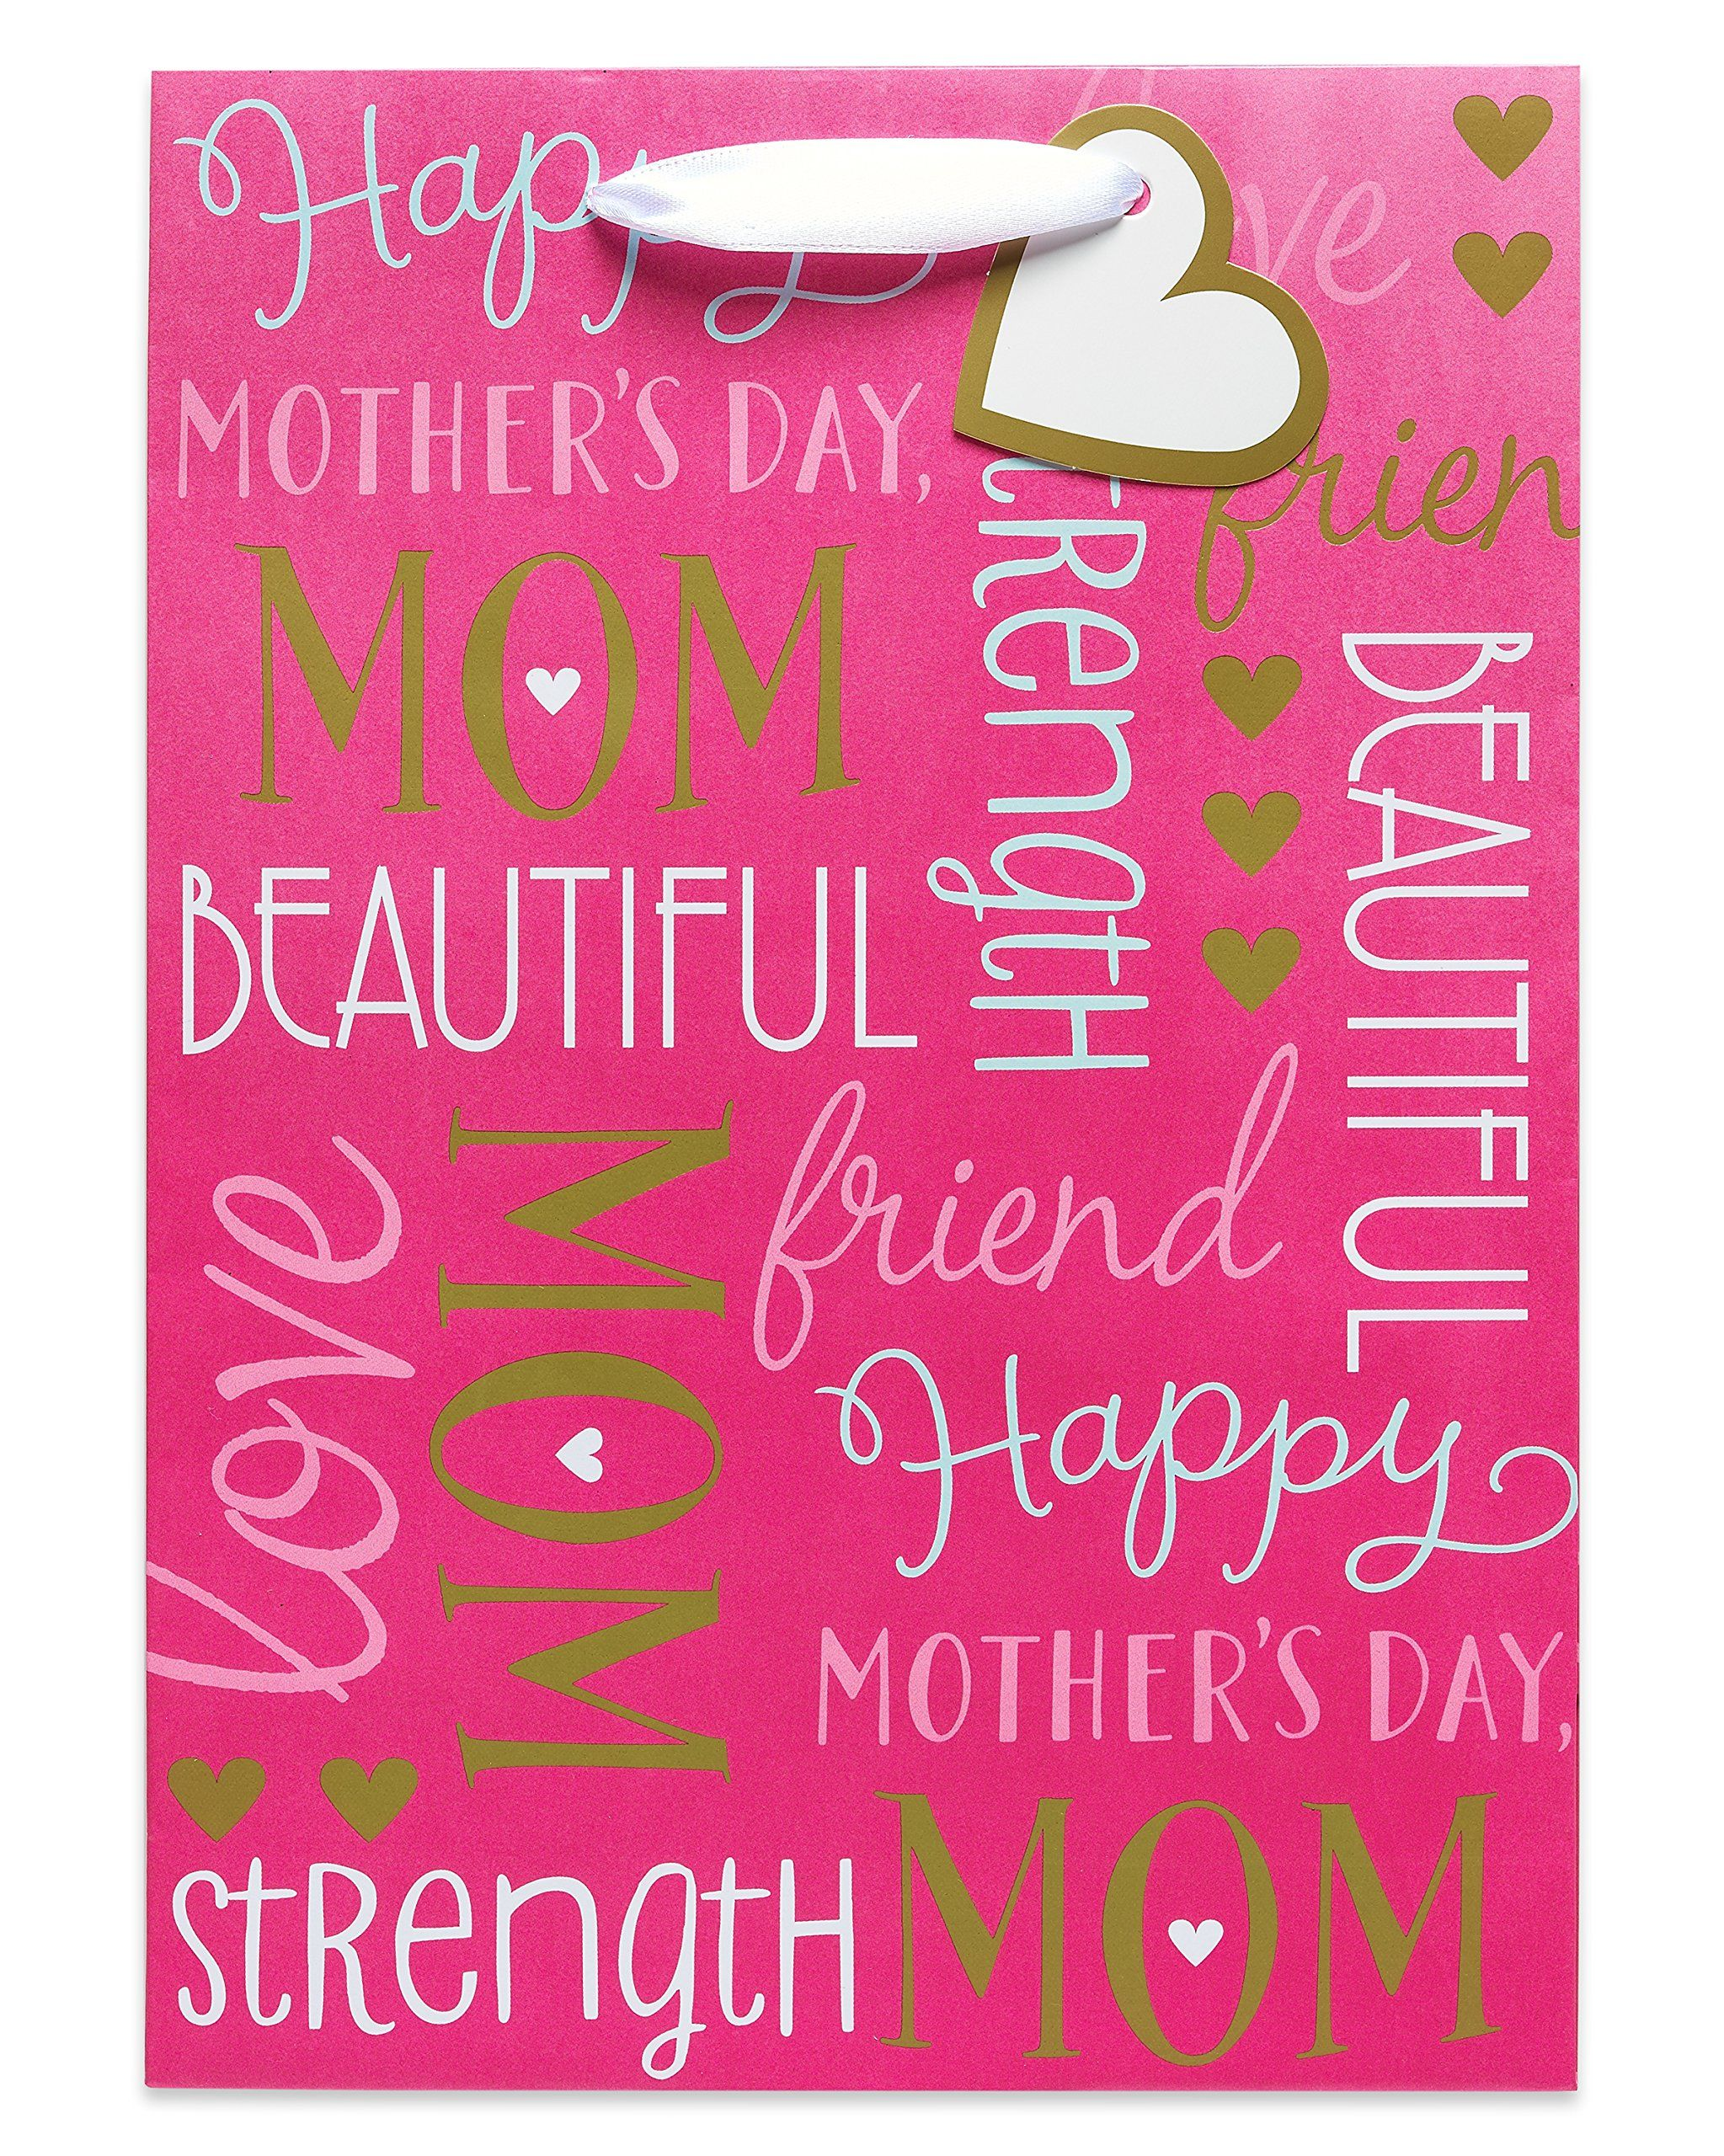 American Greetings Gold Foil Decorative Paper Celebrating Mom